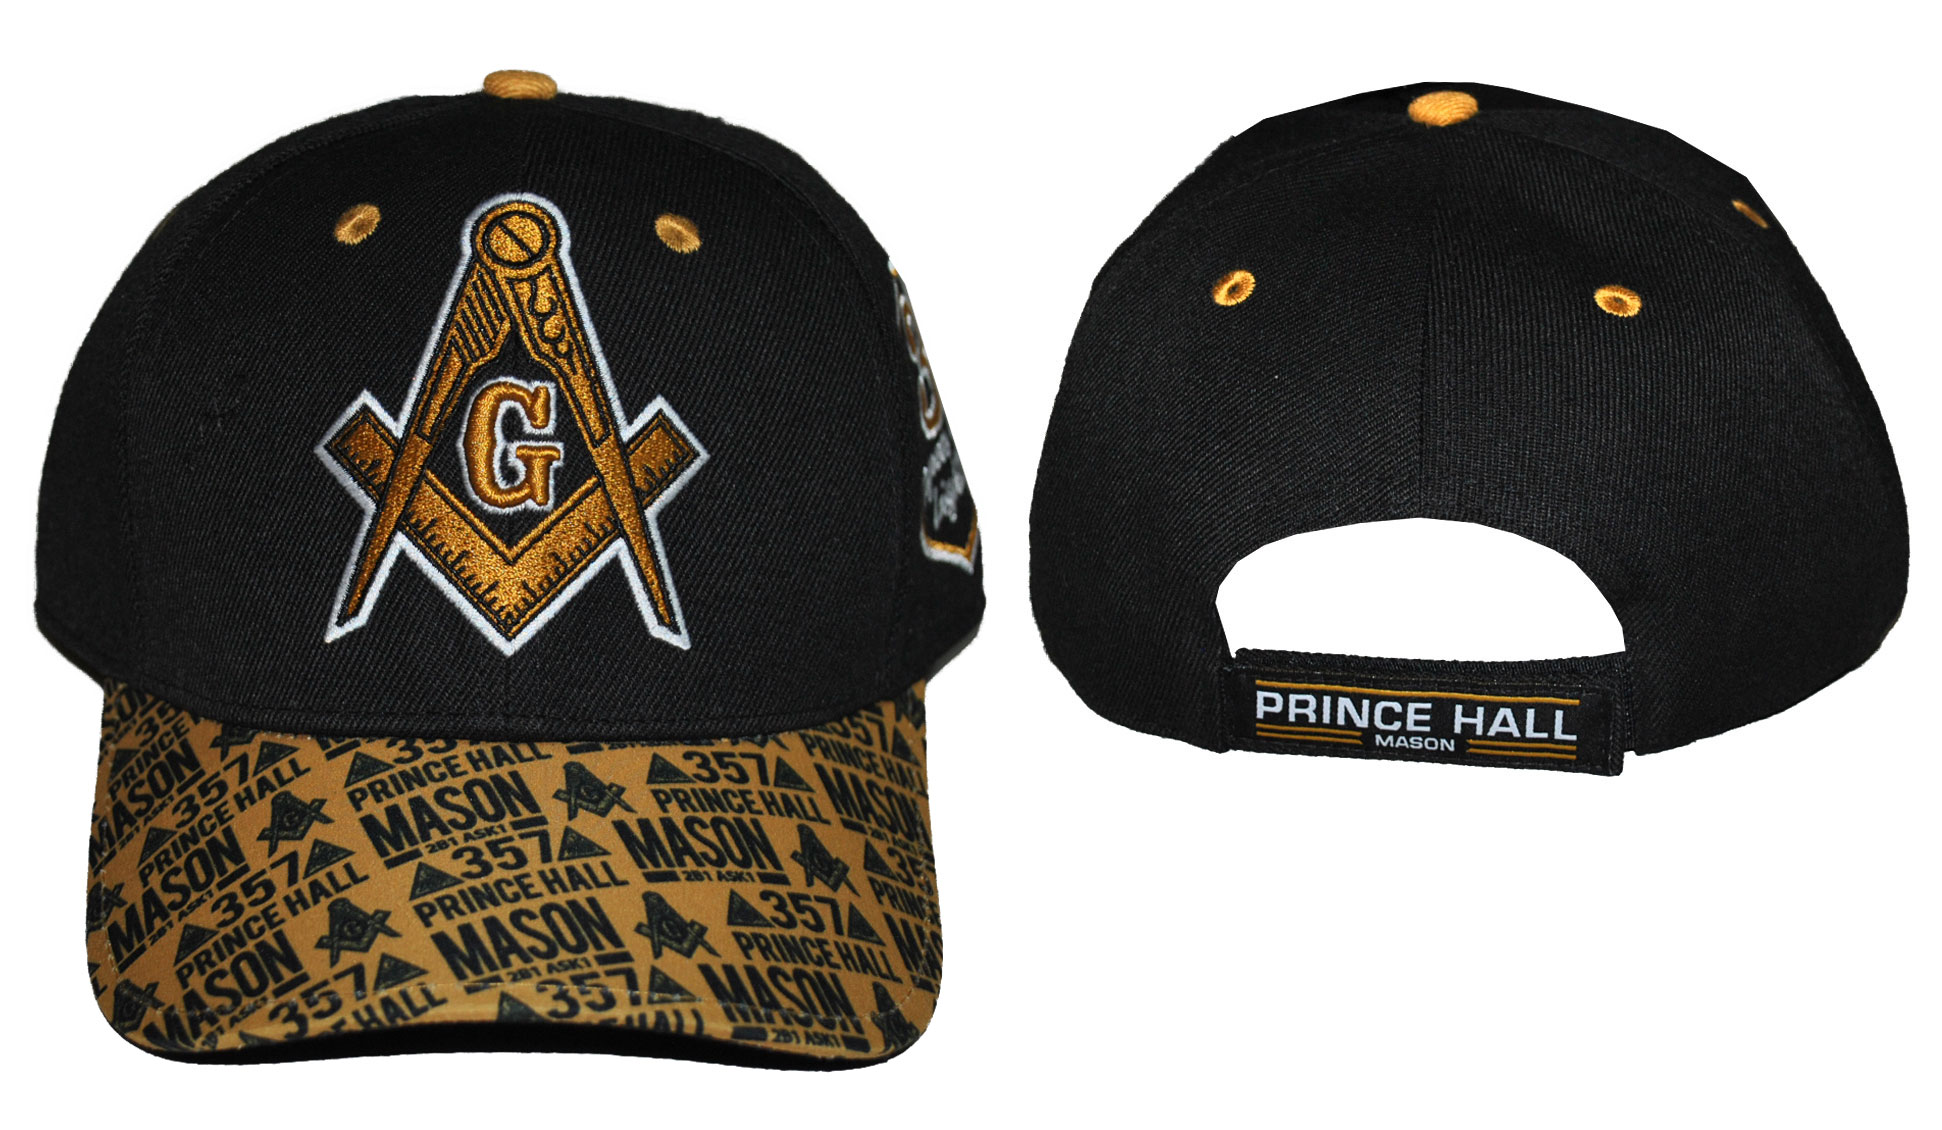 Prince Hall Cap - Freemason